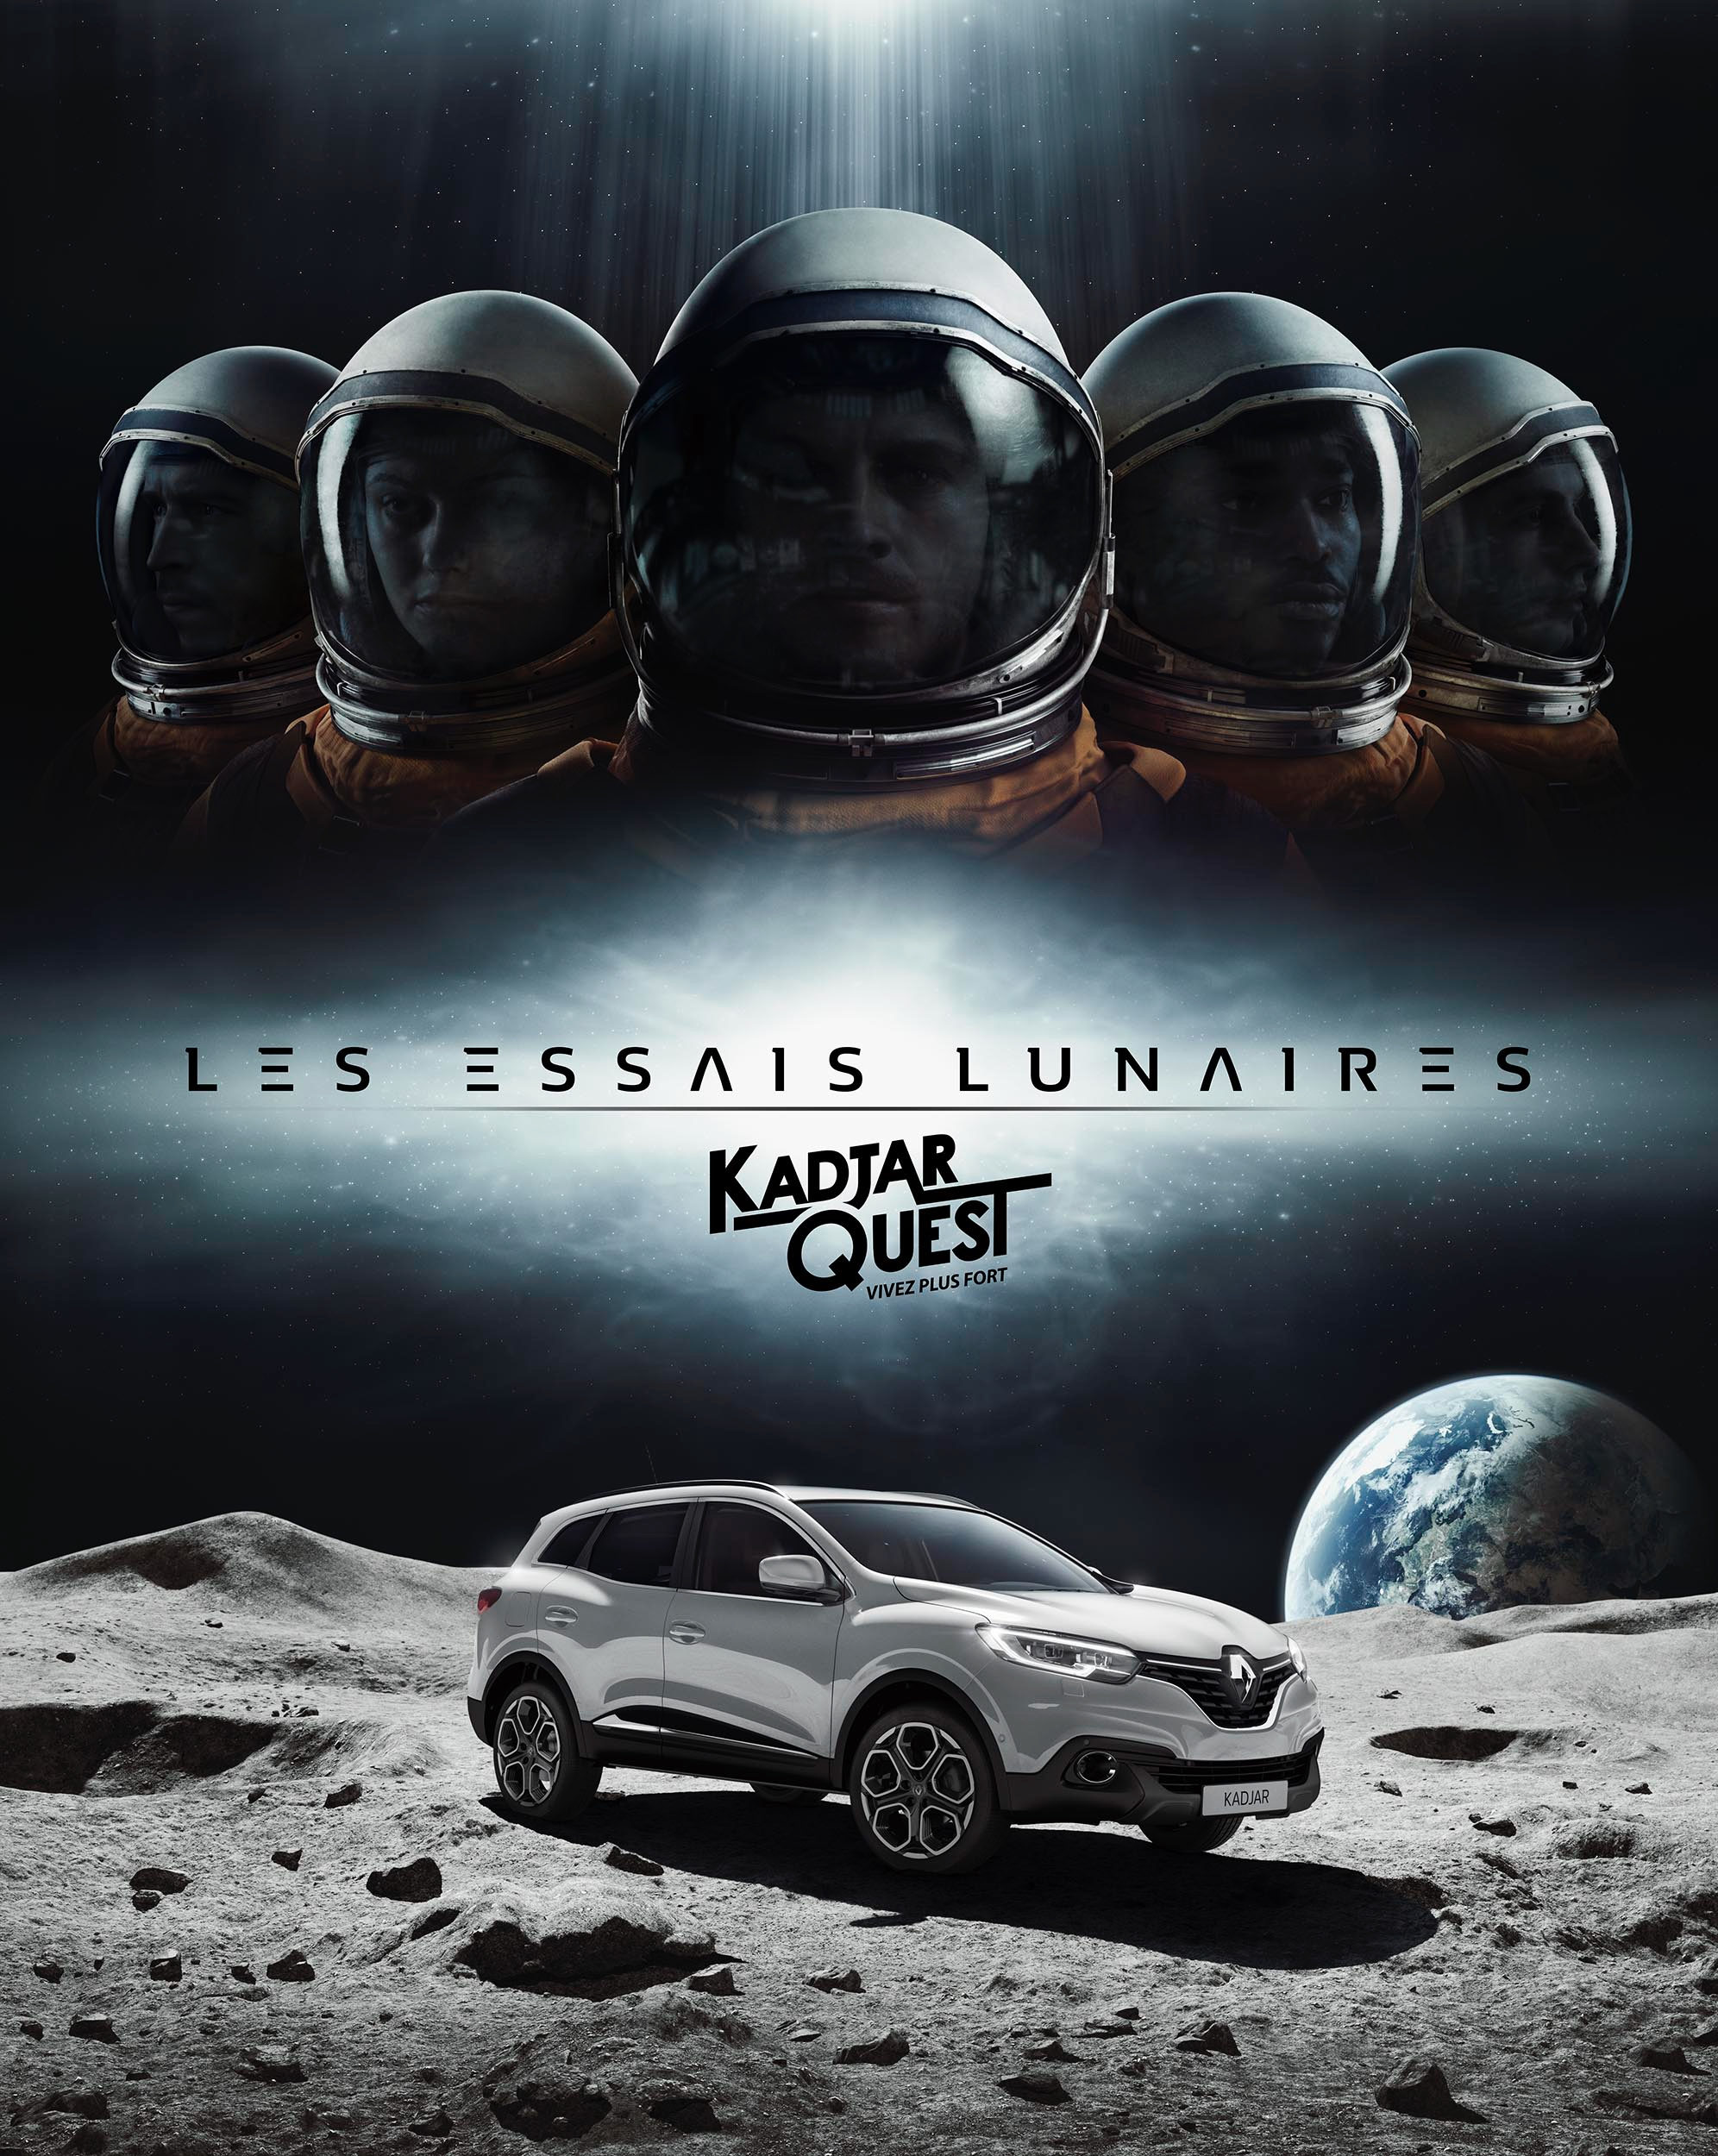 renault kadjar quest moon